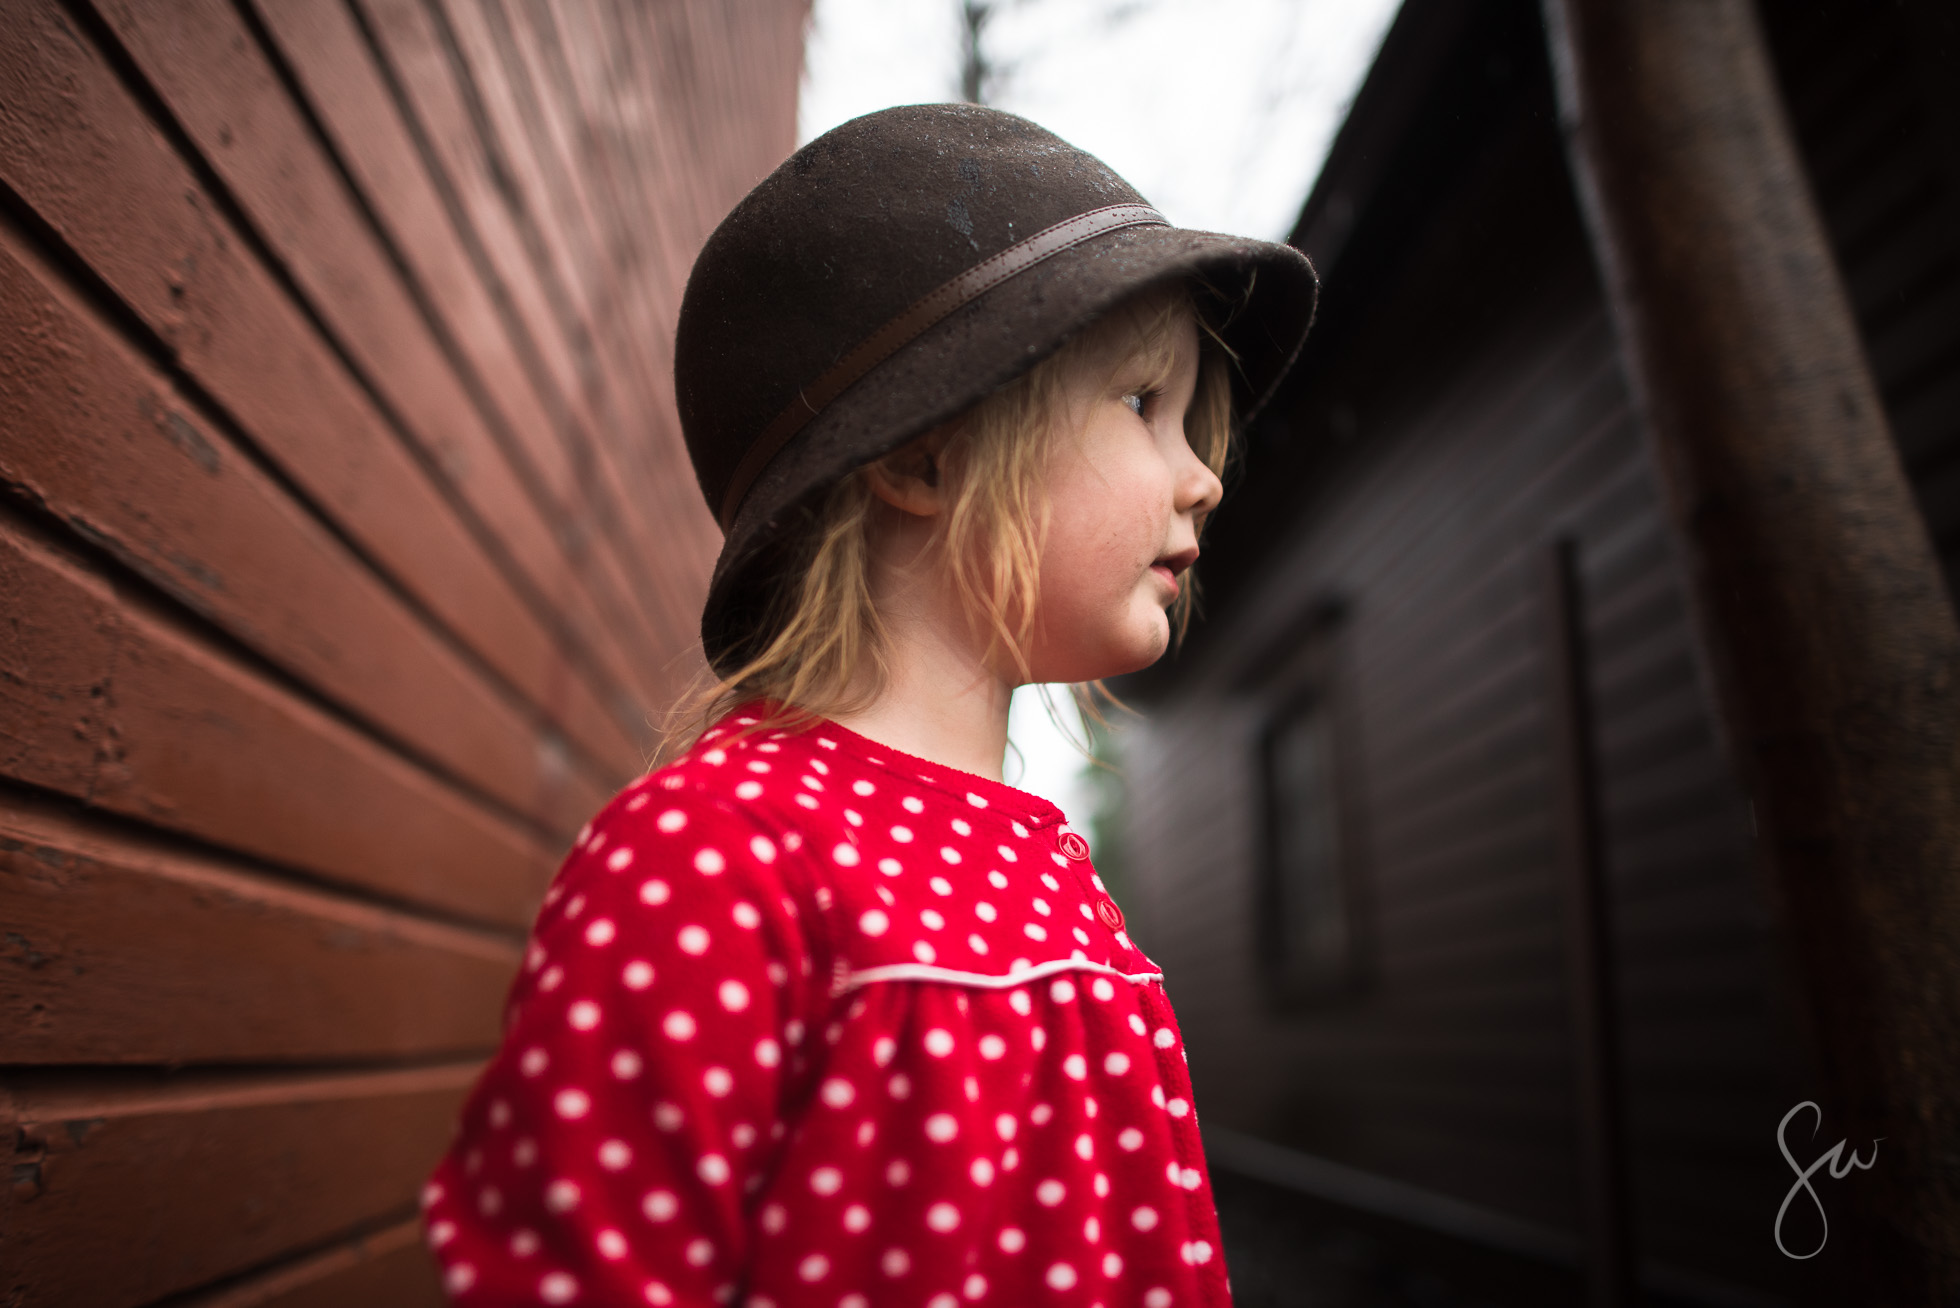 Little-Girl-in-Polka-Dots-Red-Boots-and-a-Cloche-Hat-Playing-outside-on-a-rainy-day-3764